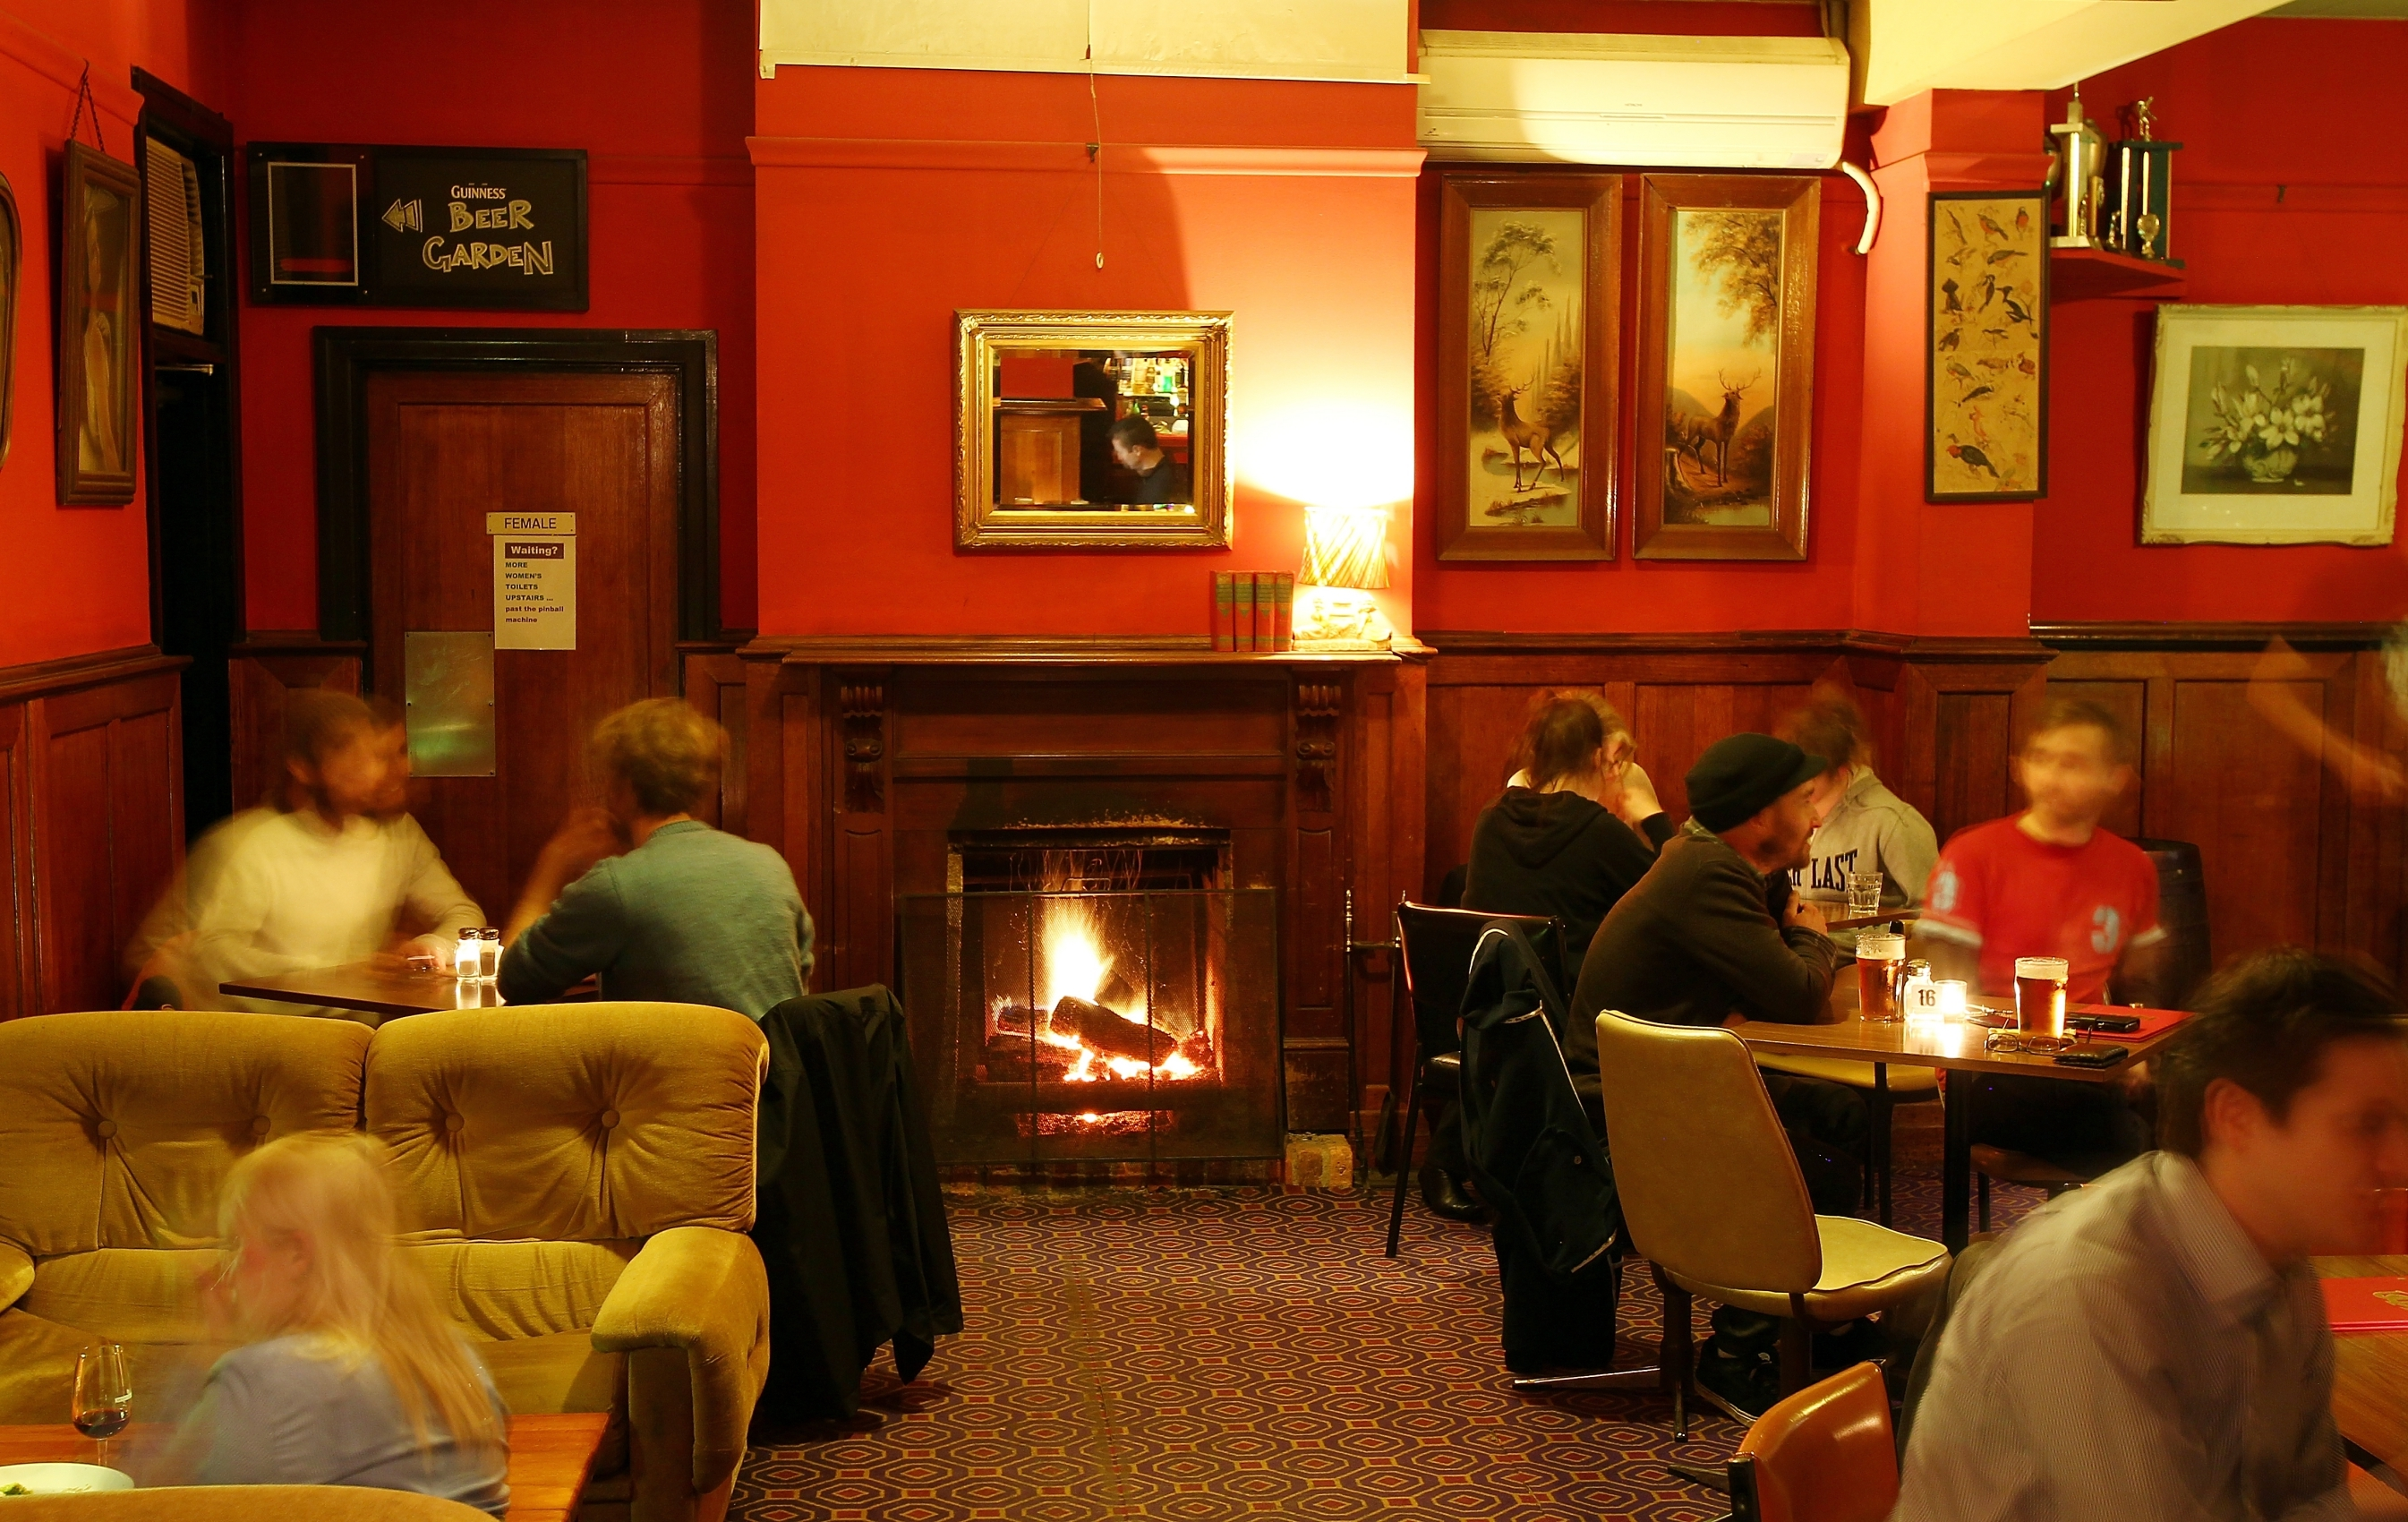 Fireplace in the dining room of The Napier Hotel